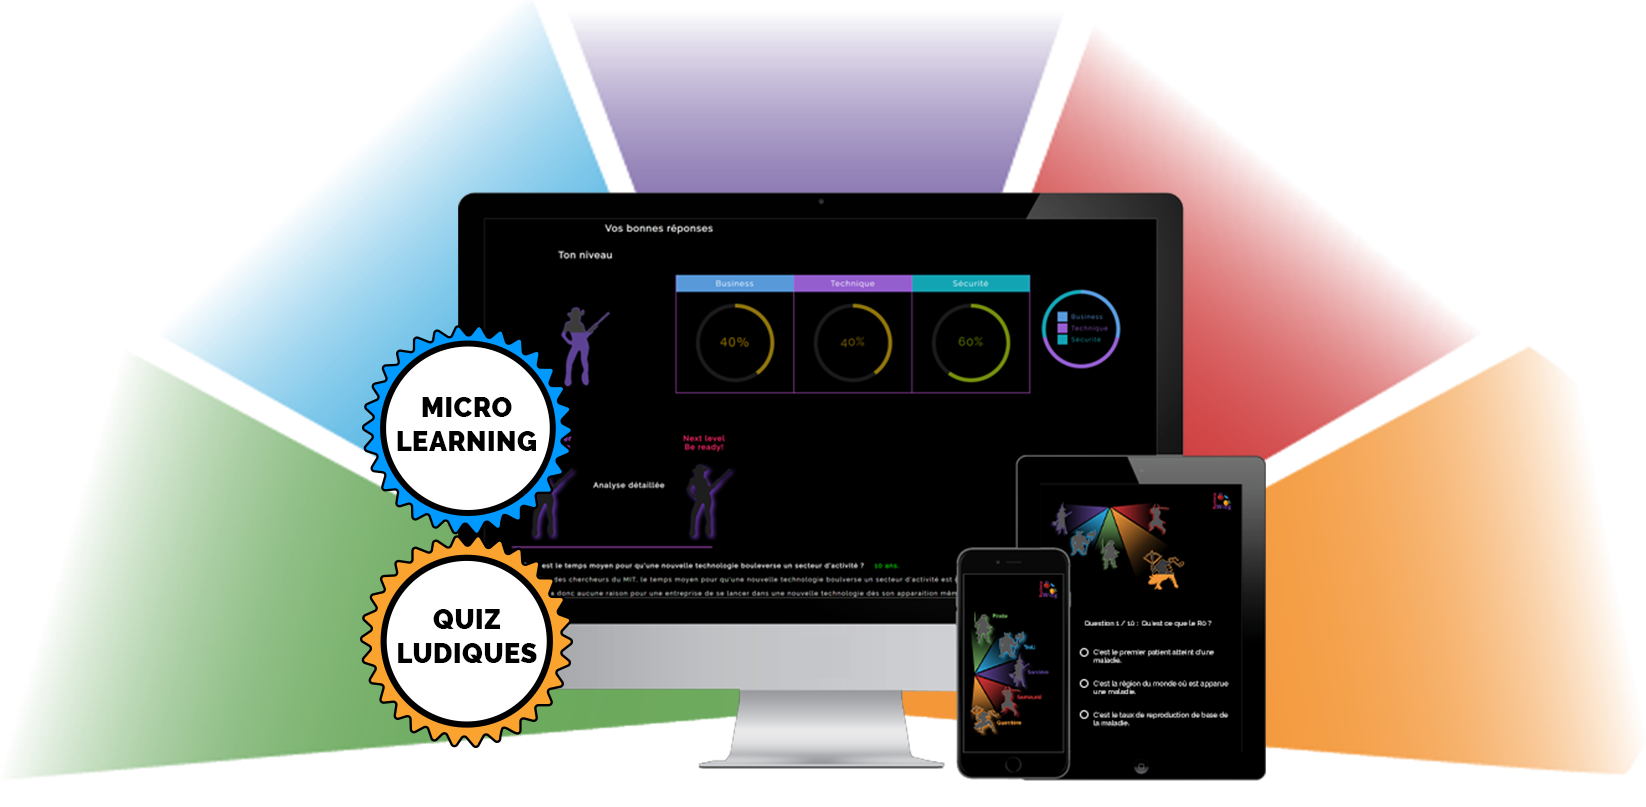 QUIZBUILDER_MICROLEARNING